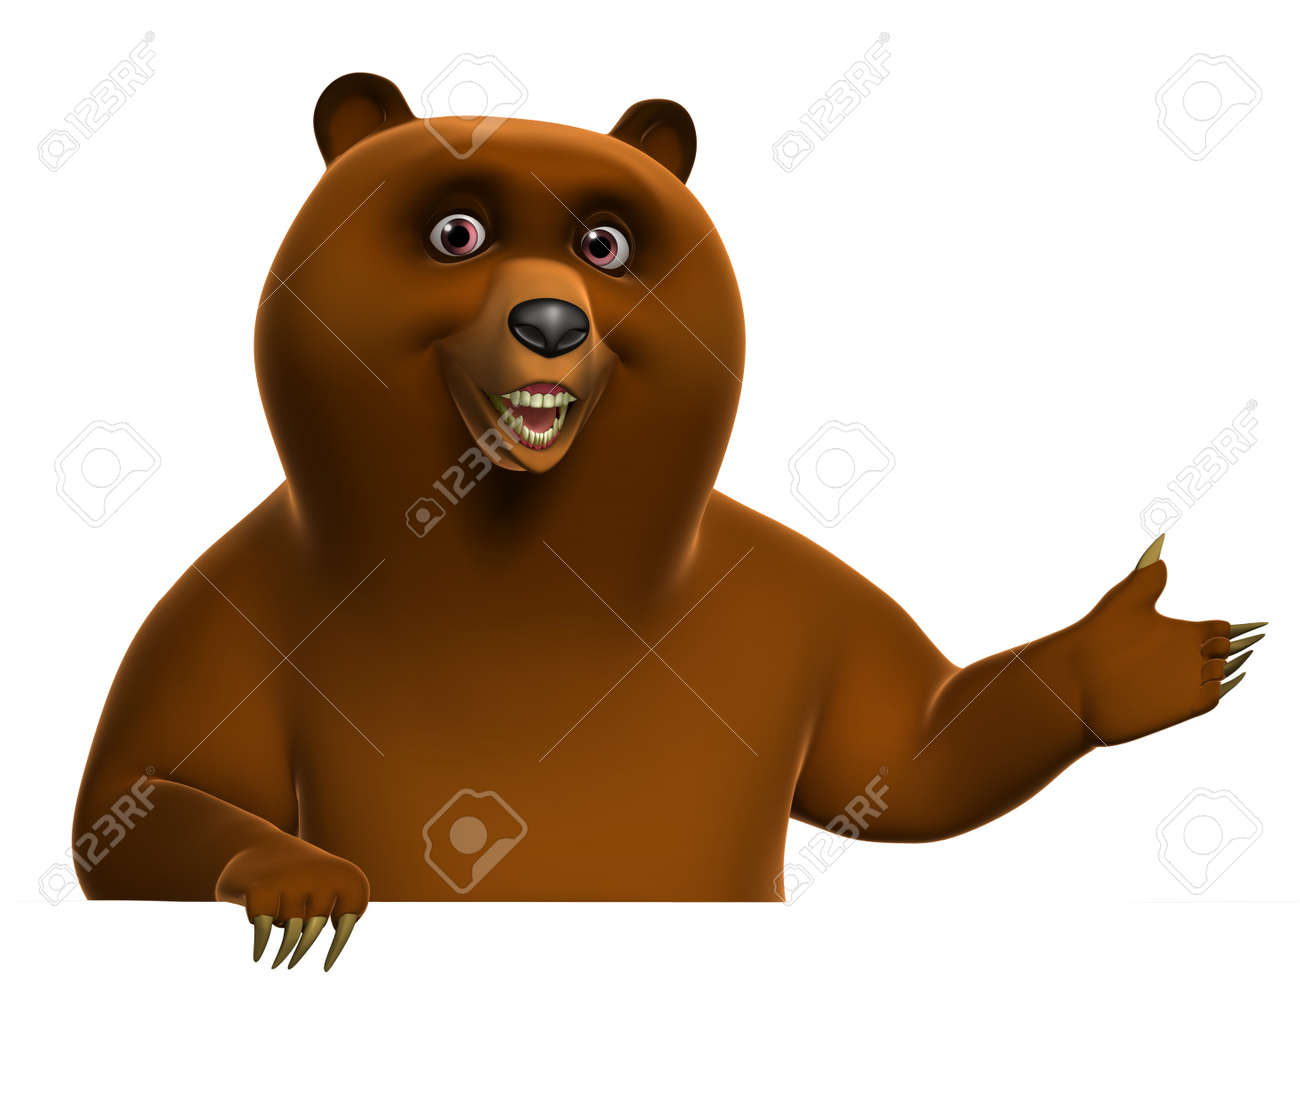 Brown grizzly bear Stock Photo - 15611956